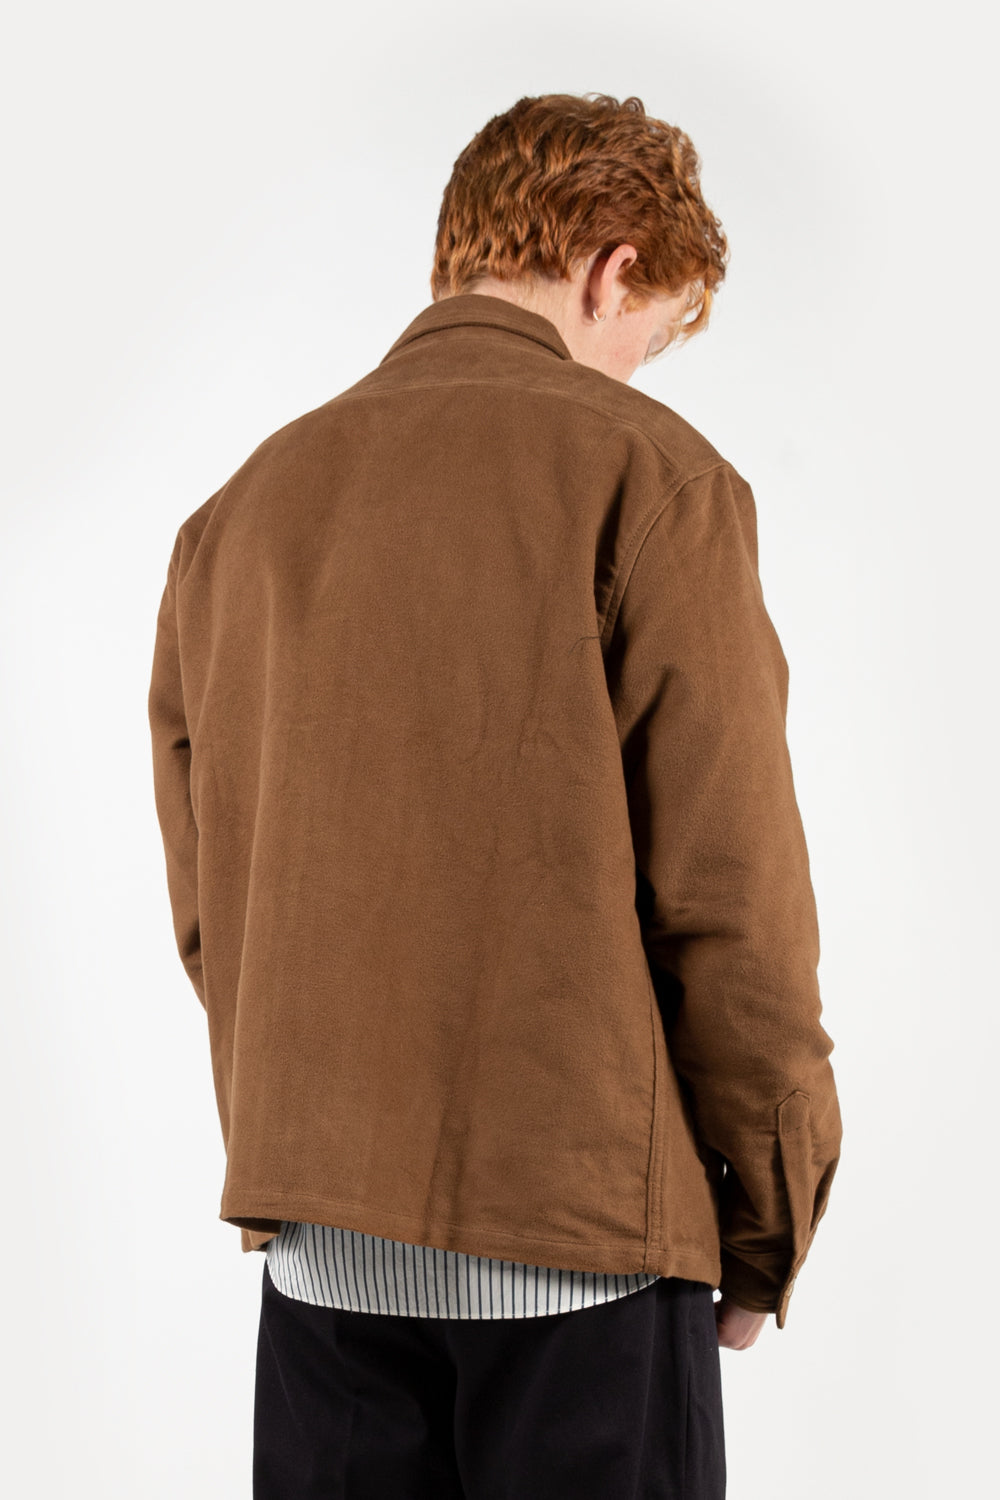 reception club jacket in tan